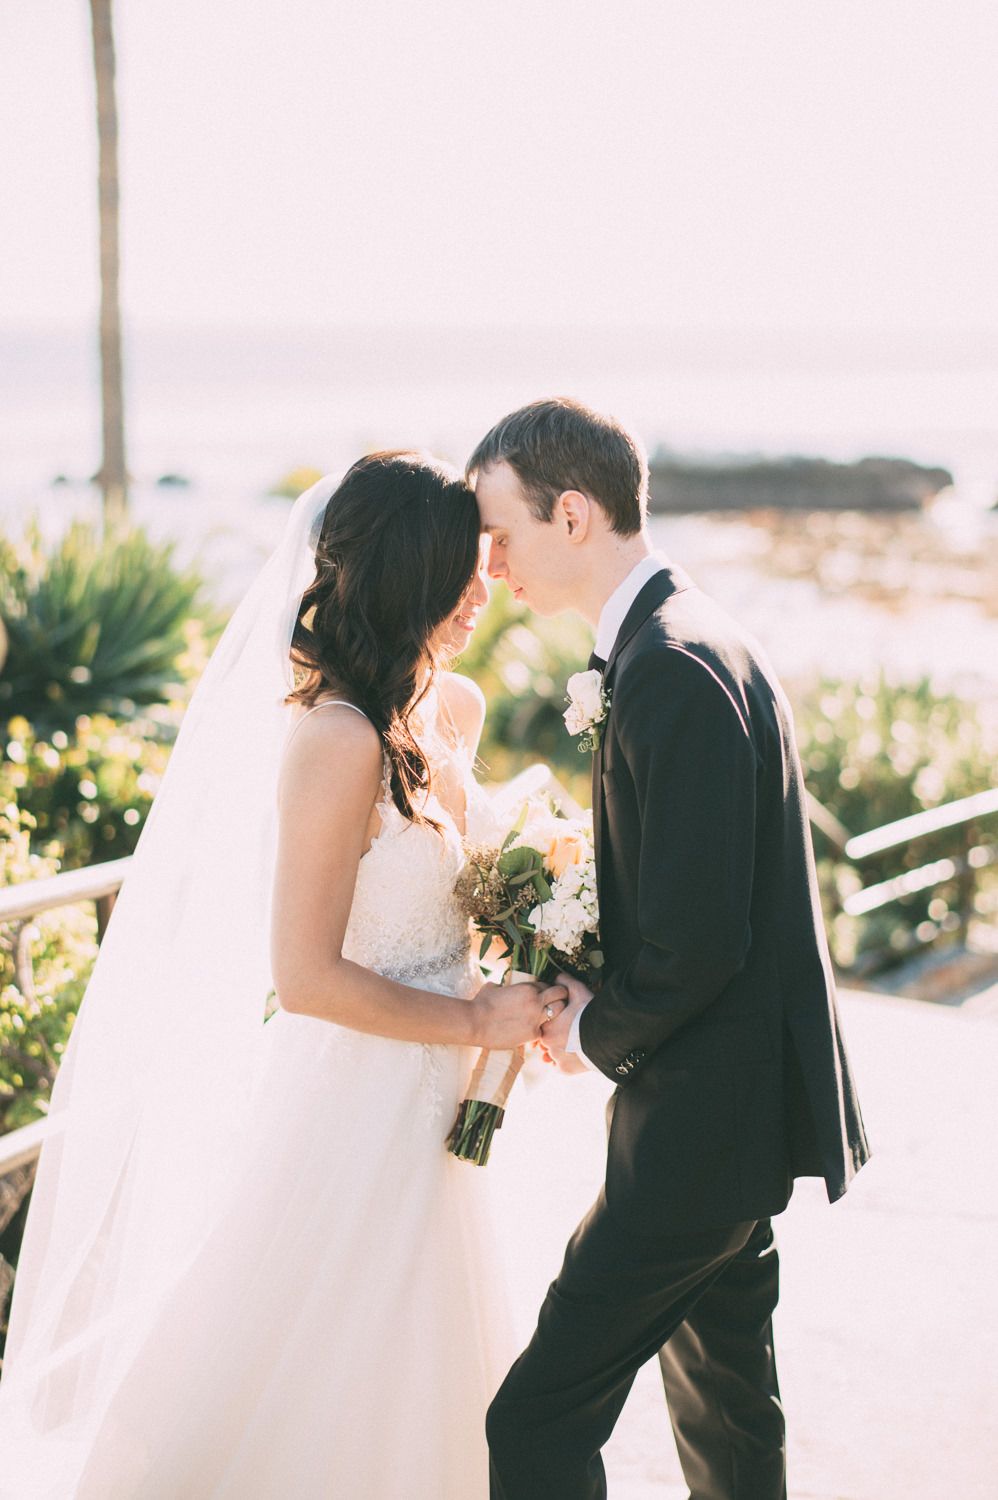 LagunaBeachArtMuseumWedding_by_TheImageIsFound.com_0052.jpg